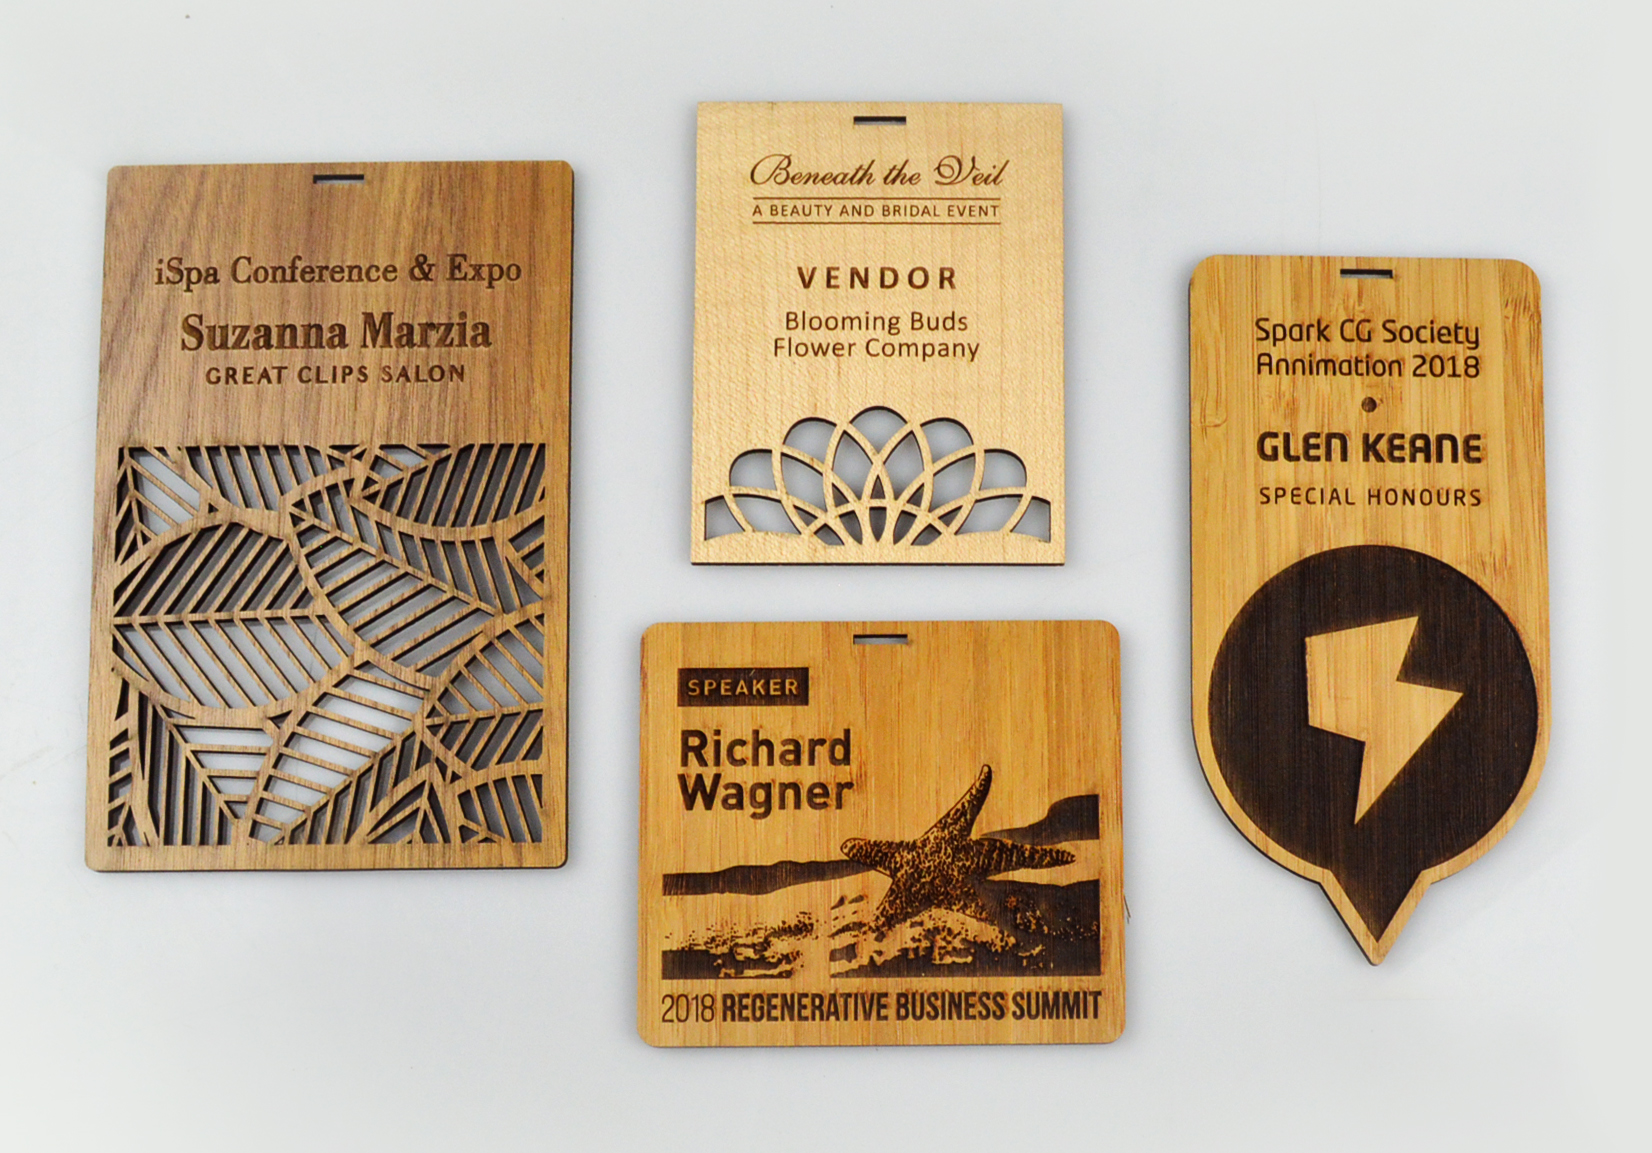 custom-awards_wood_conference-badges_personalized_laser-cut_eco-friendly_corporate_north-america2